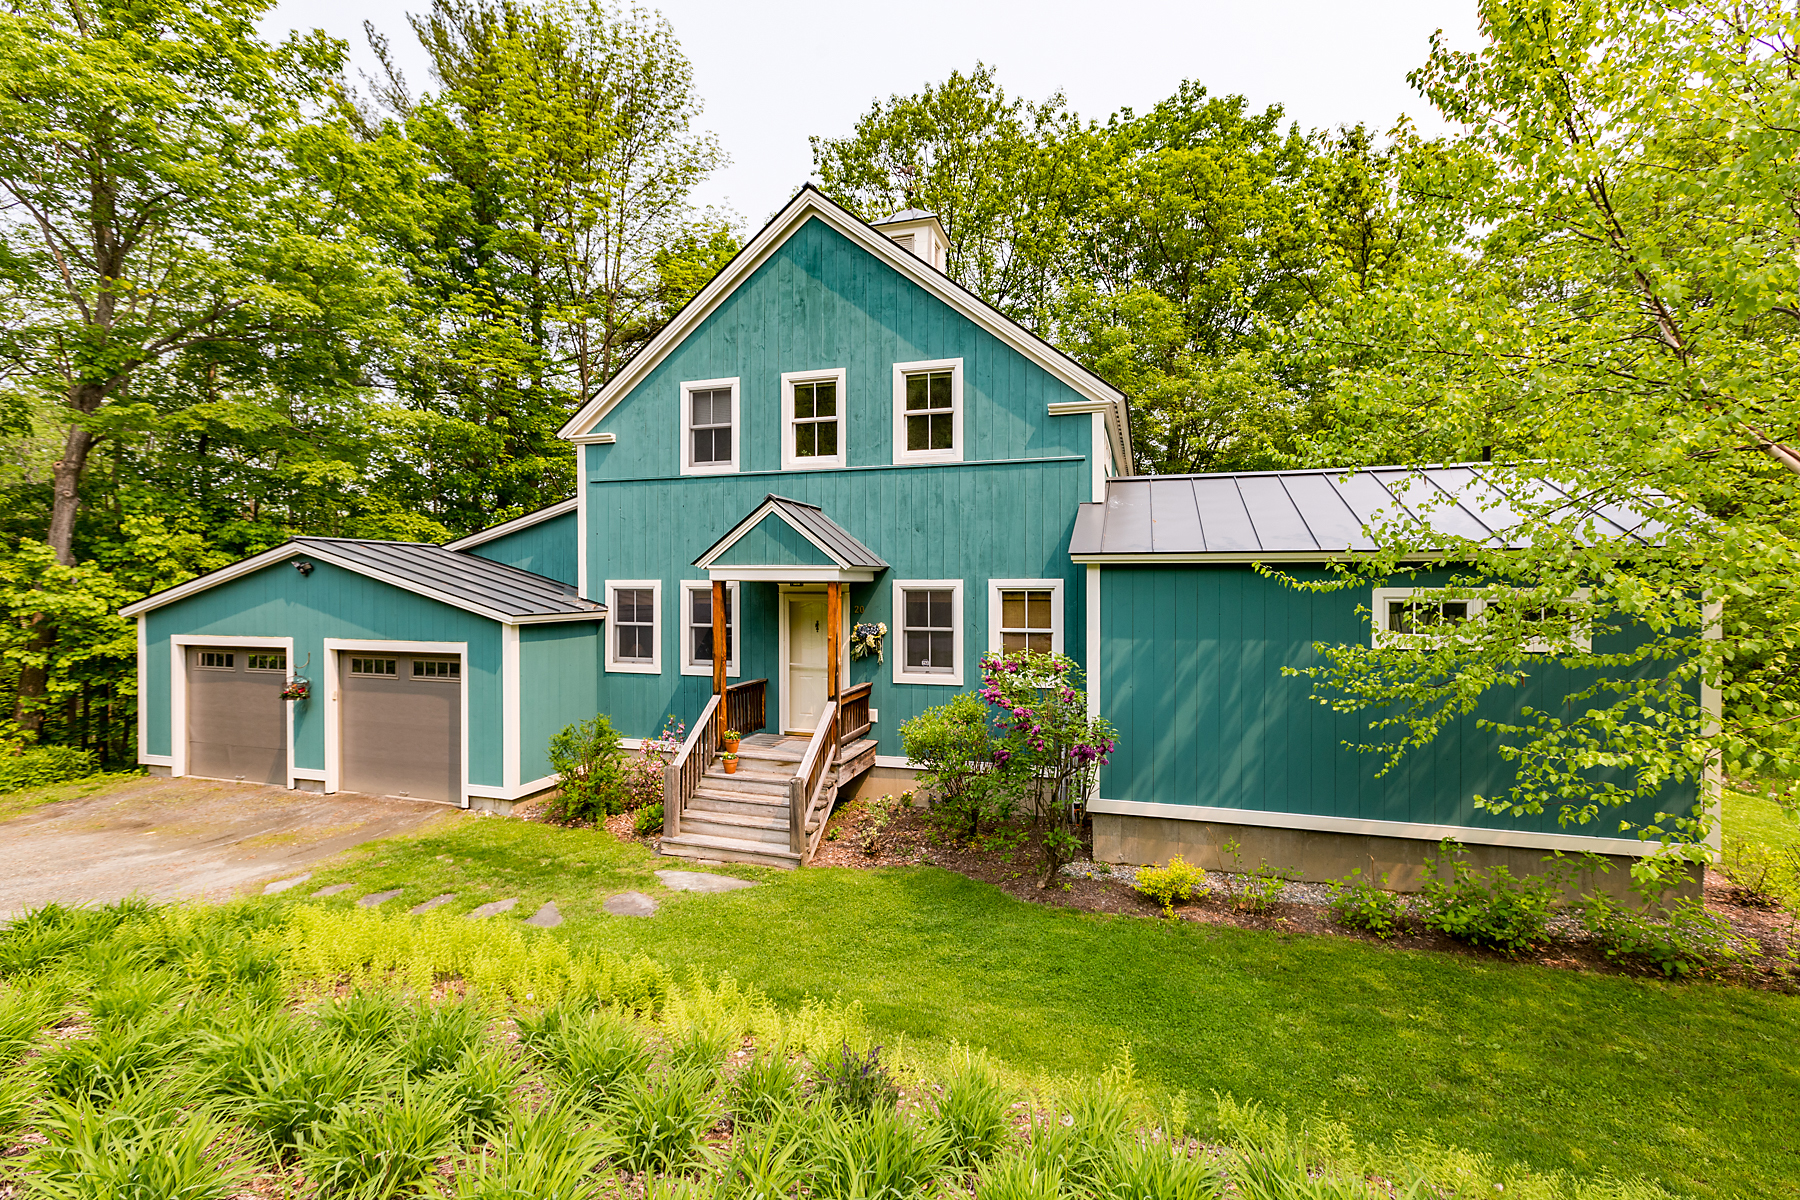 Single Family Homes for Sale at Walking Distance to Amenities 20 Lincoln Street Woodstock, Vermont 05091 United States